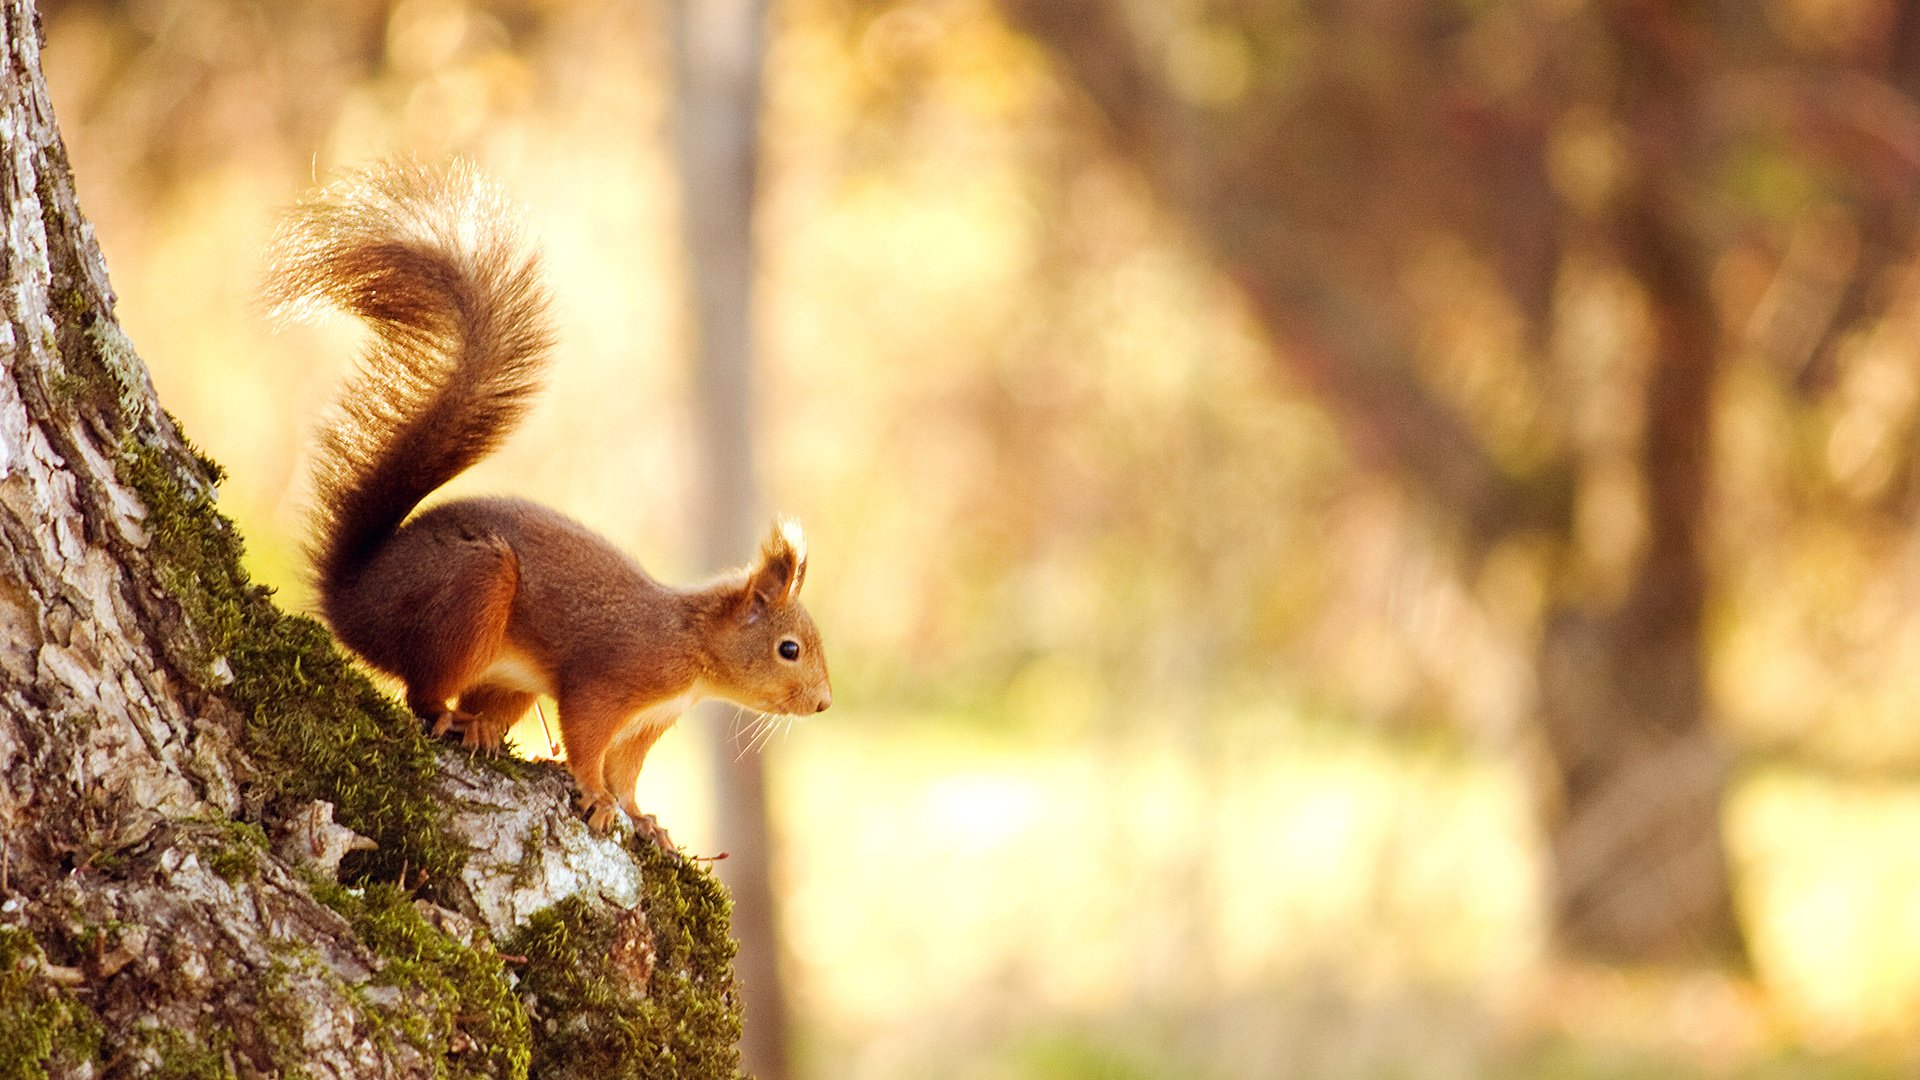 animals-squirrel-nutlet-cute-forest-1920×1080-wallpaper-wpc9002239